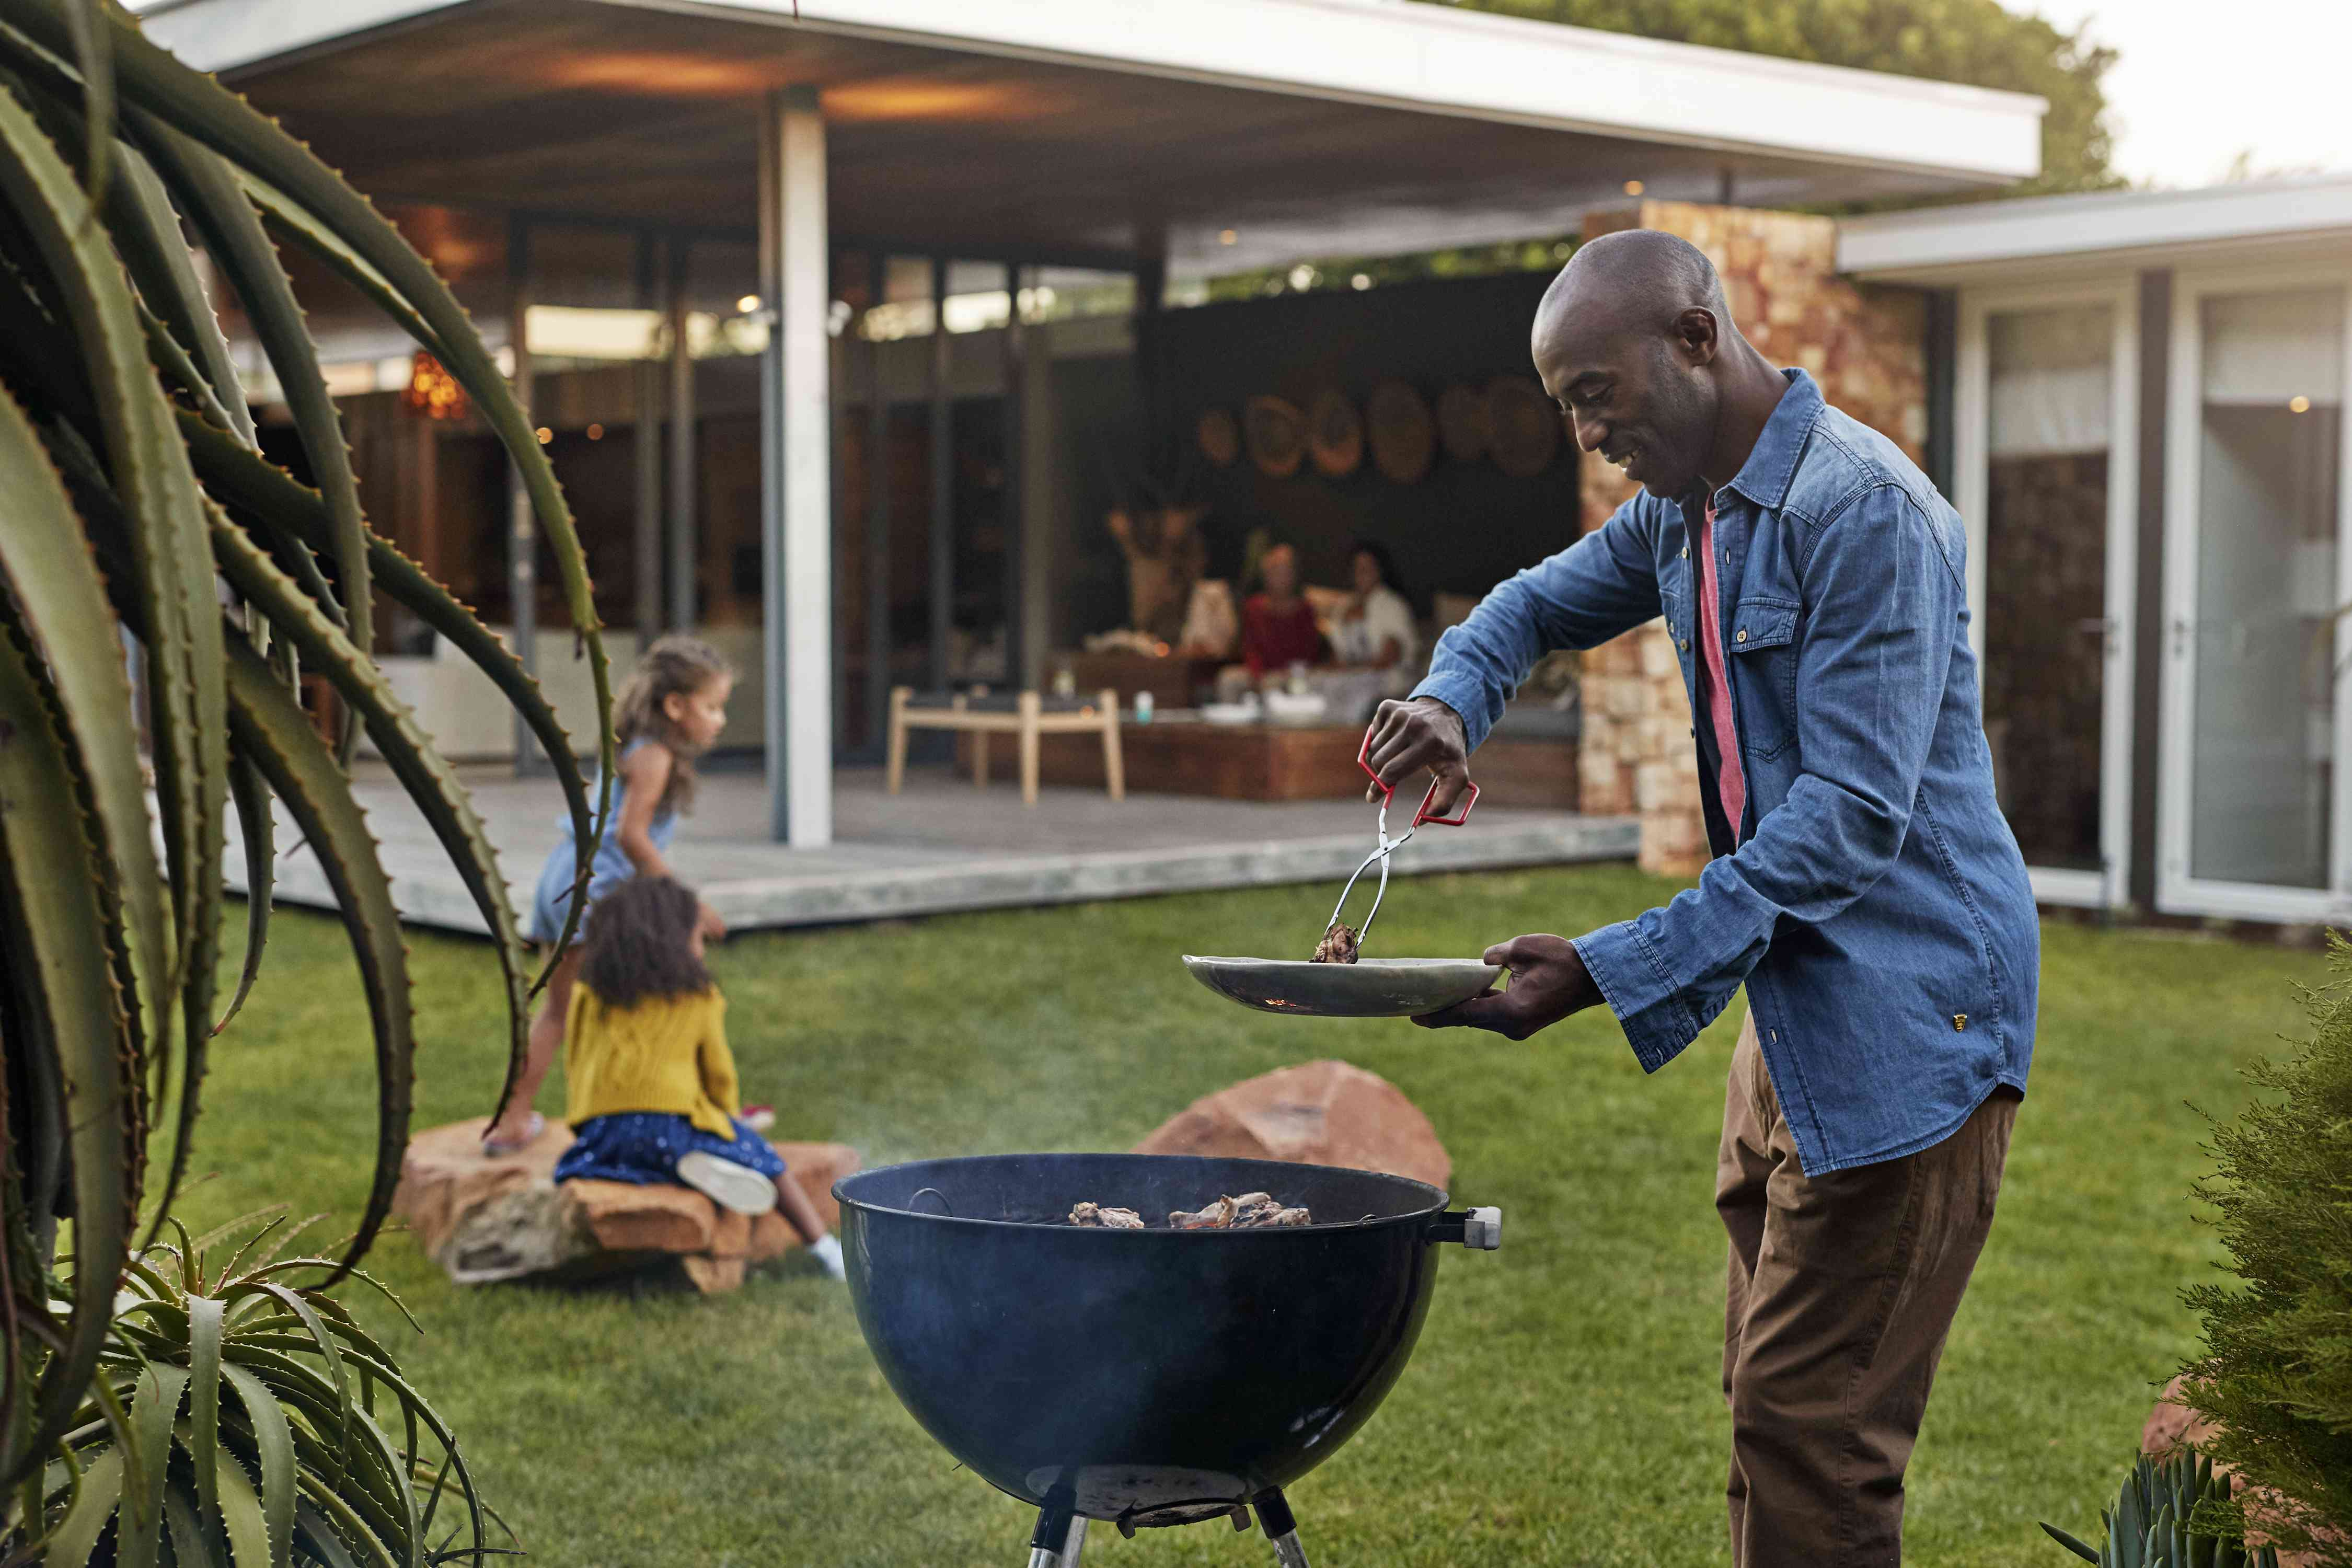 A man in a denim shirt grills while a family plays in the background